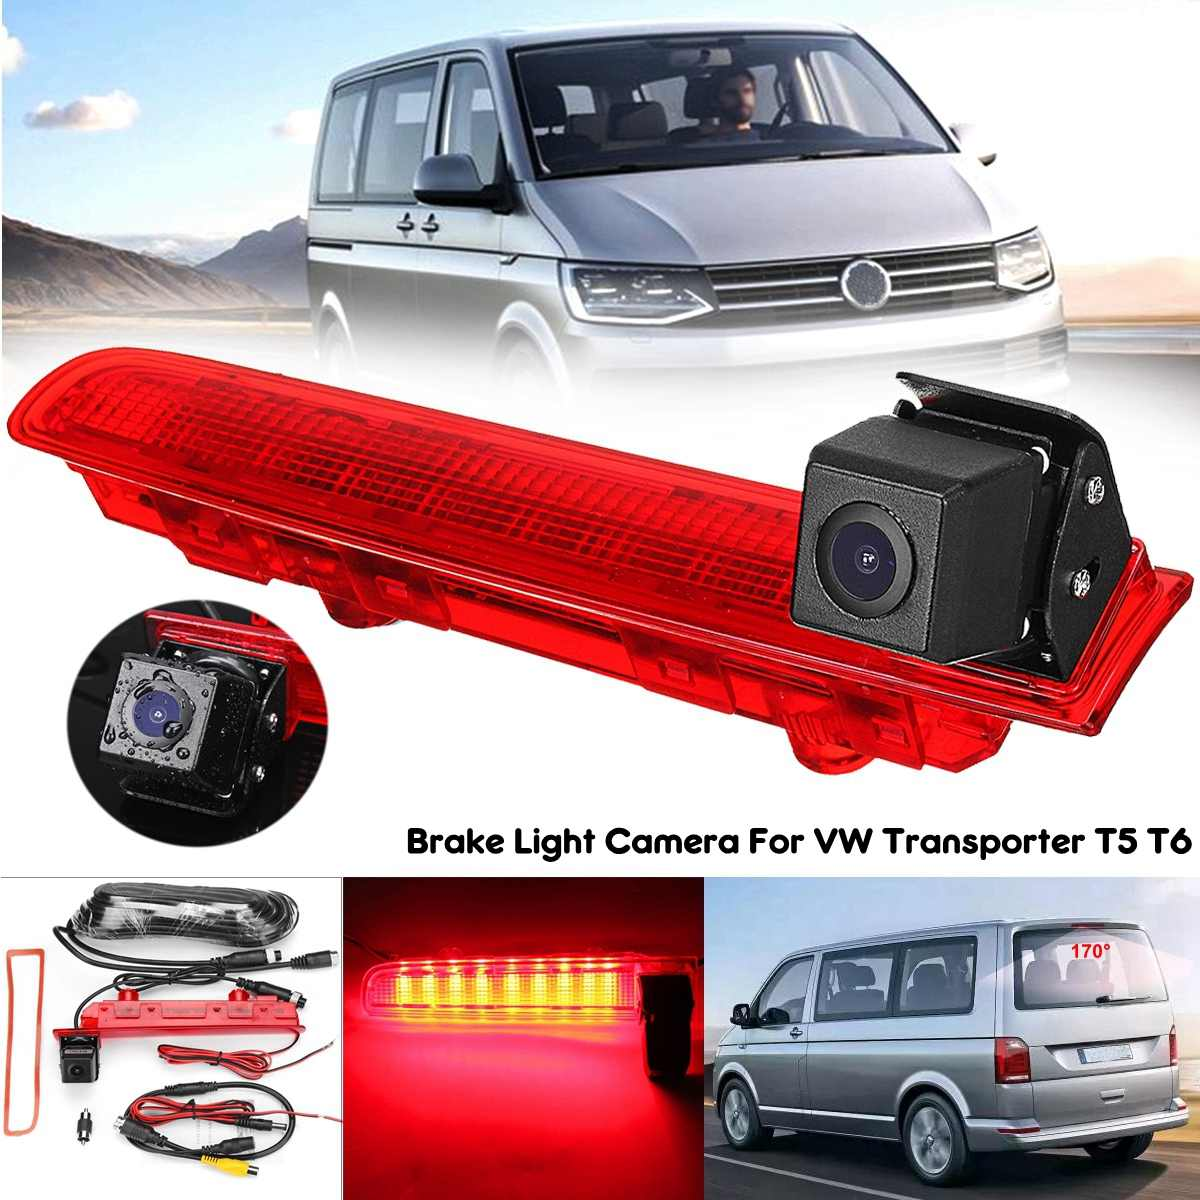 170 Degree Car Reversing Backup Rear View Camera W/Brake Light For VW Transporter T5 & T6 2010 - Onwards